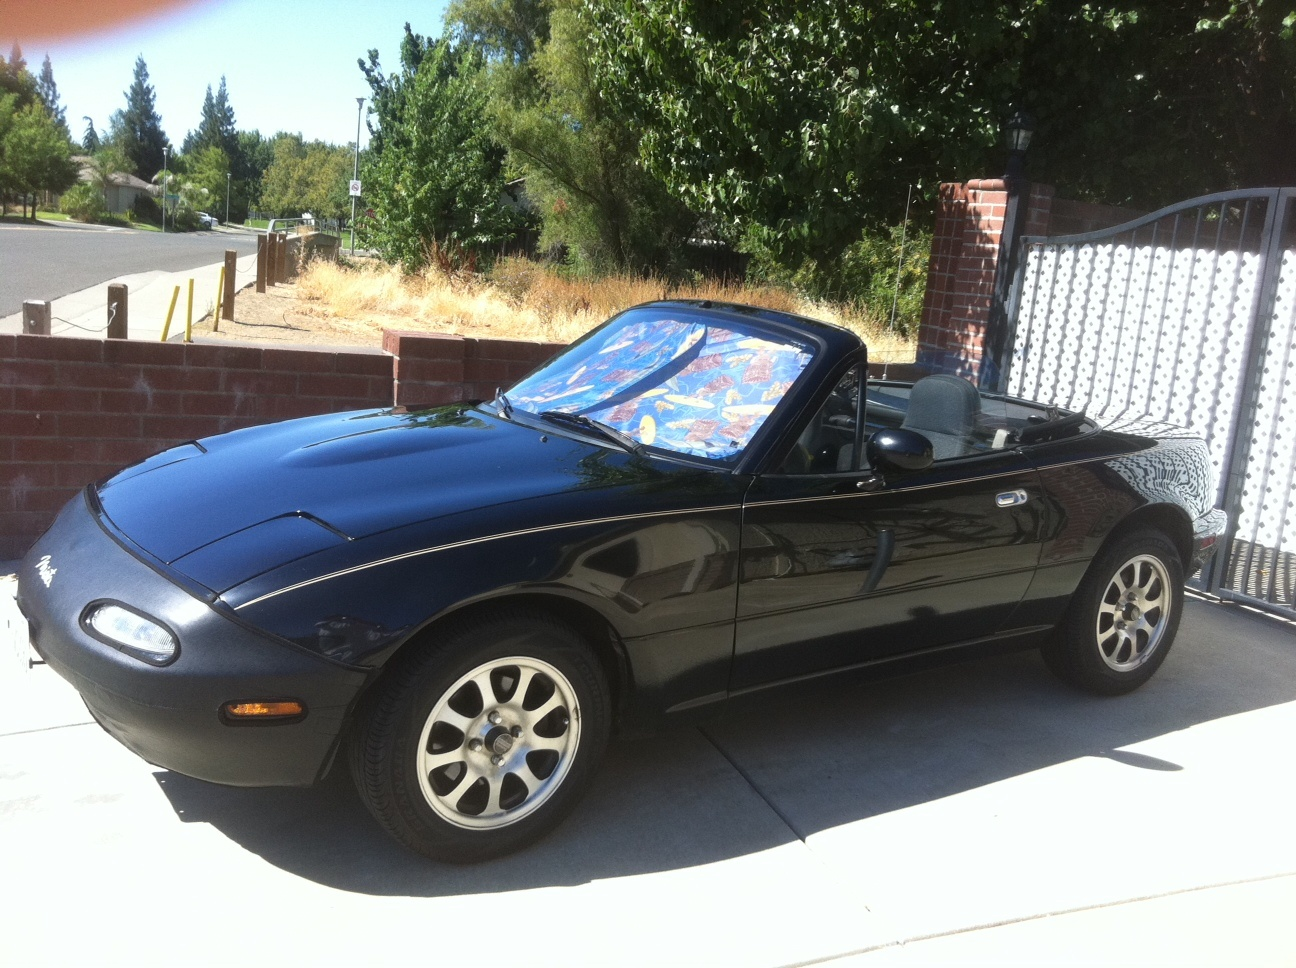 Picture of 1995 Mazda MX-5 Miata 2 Dr STD Convertible